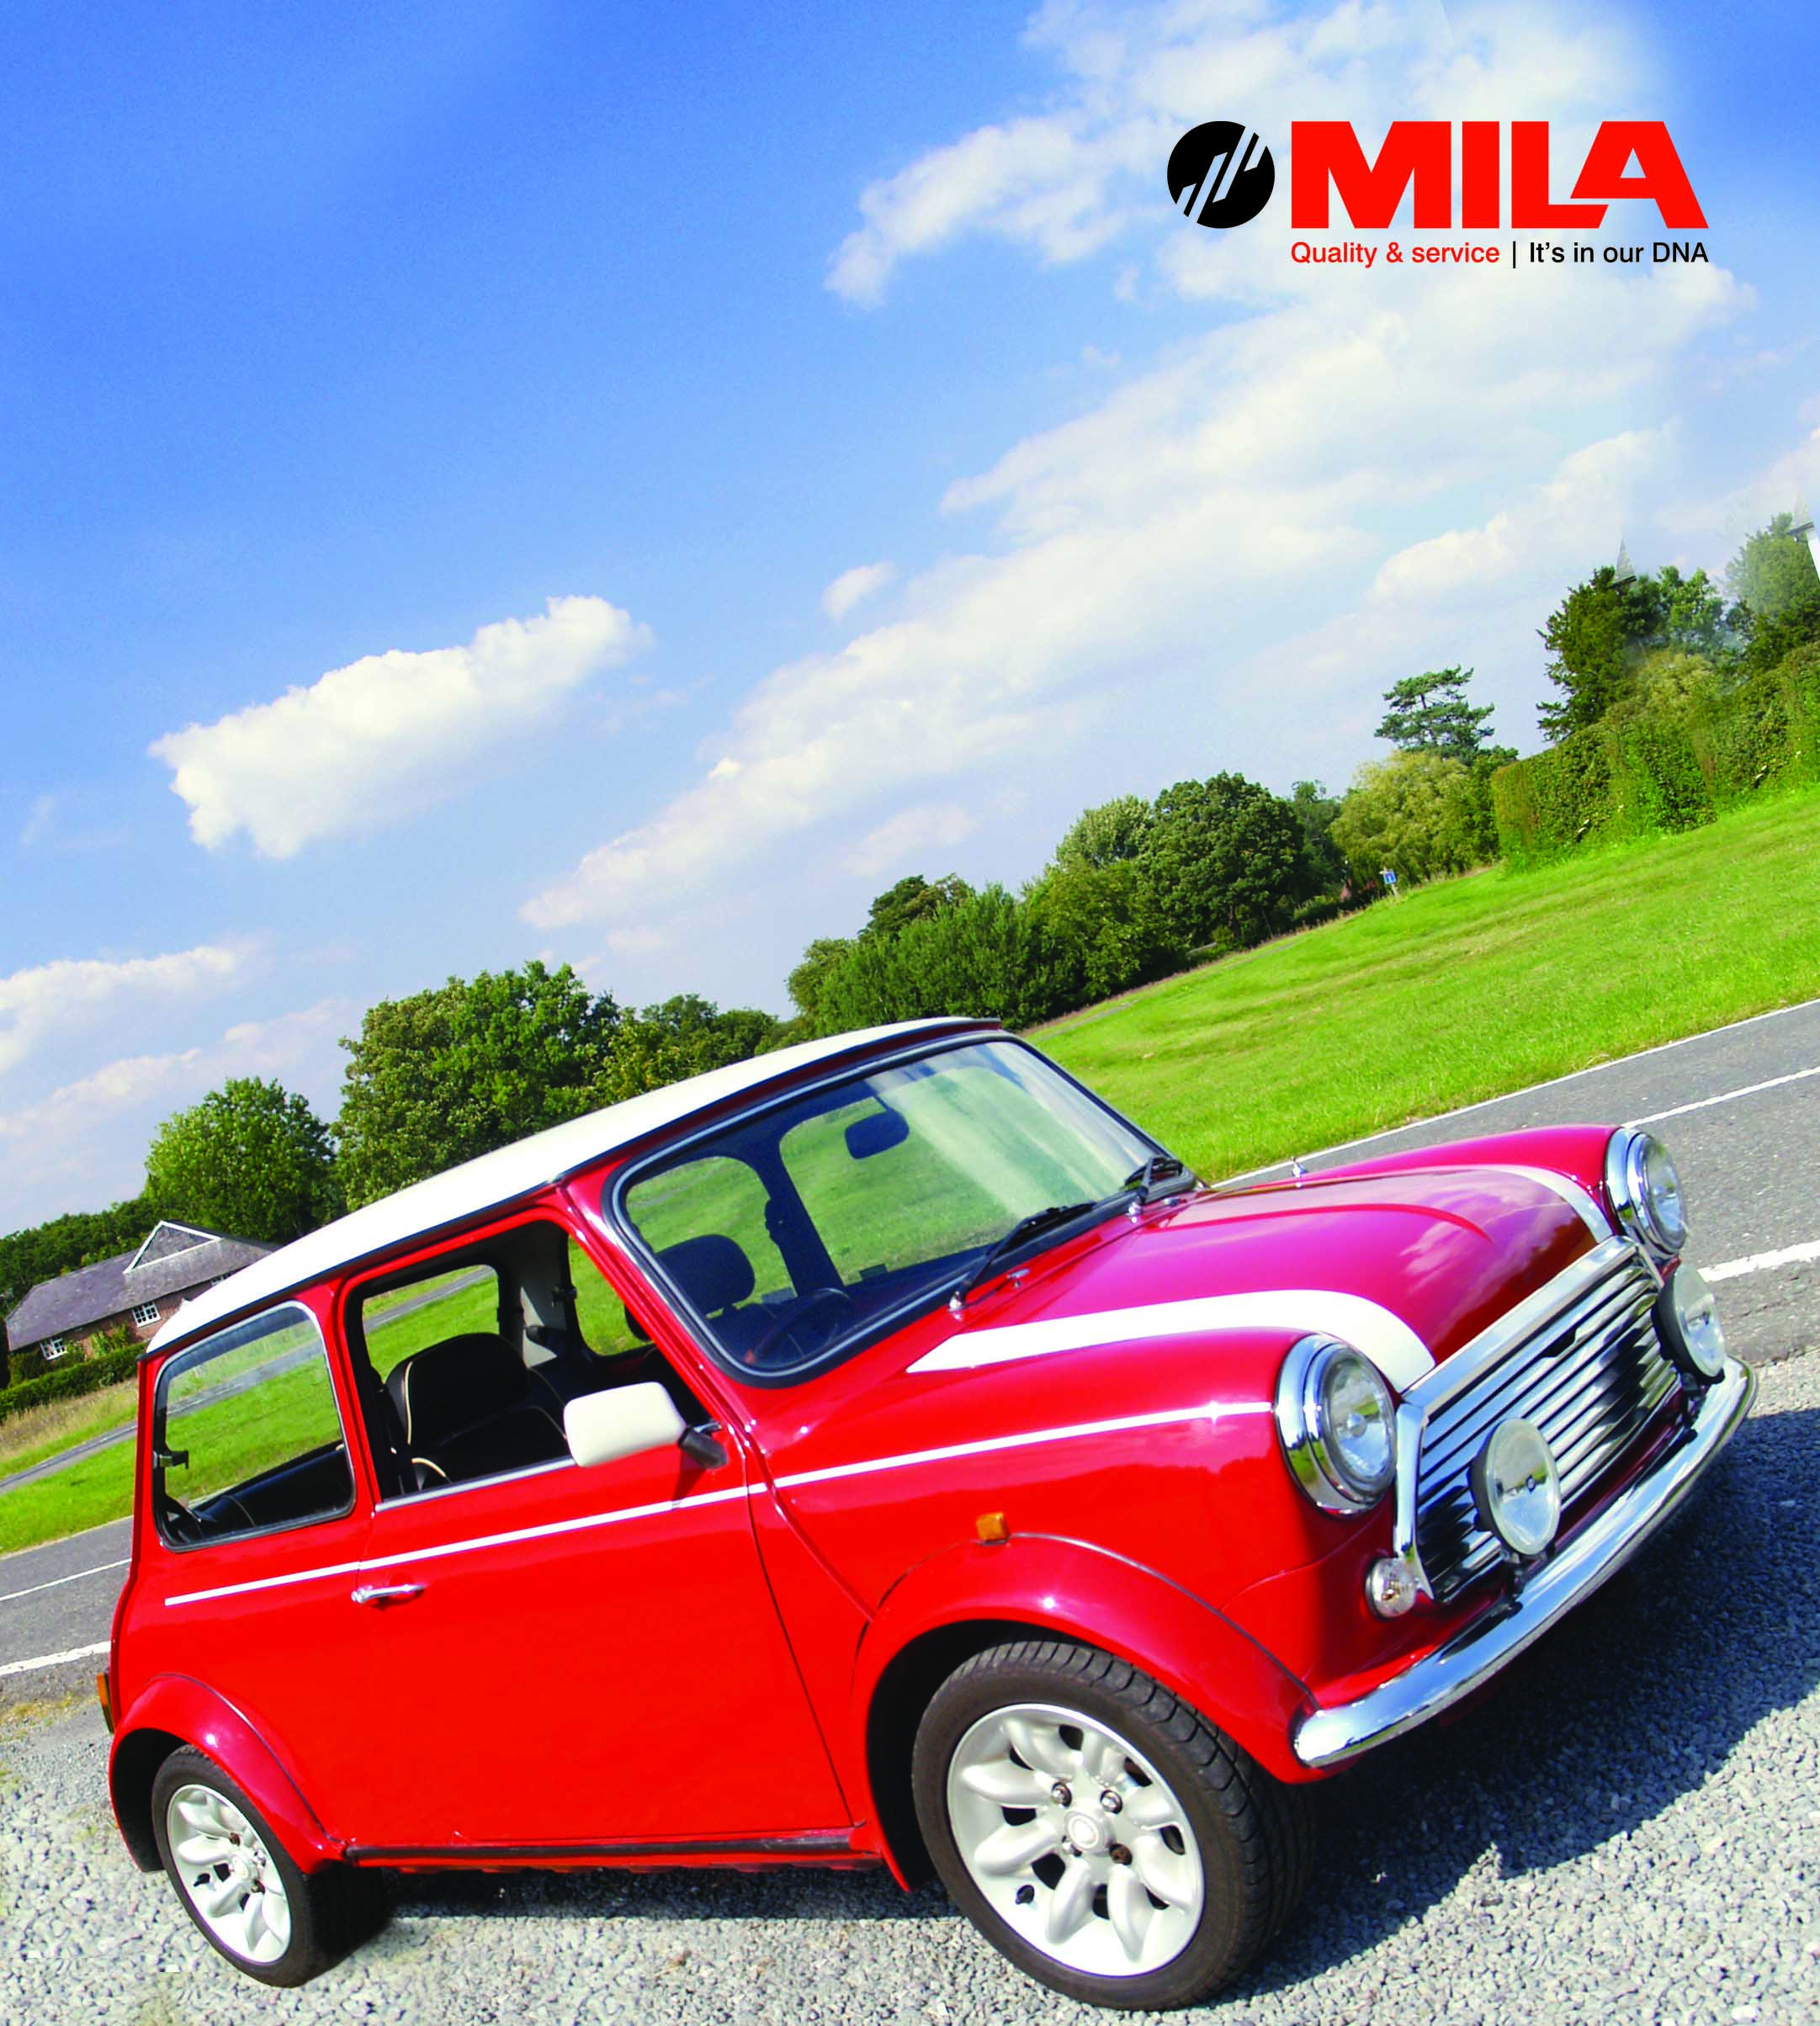 Mila shows its strength at the Fit Show